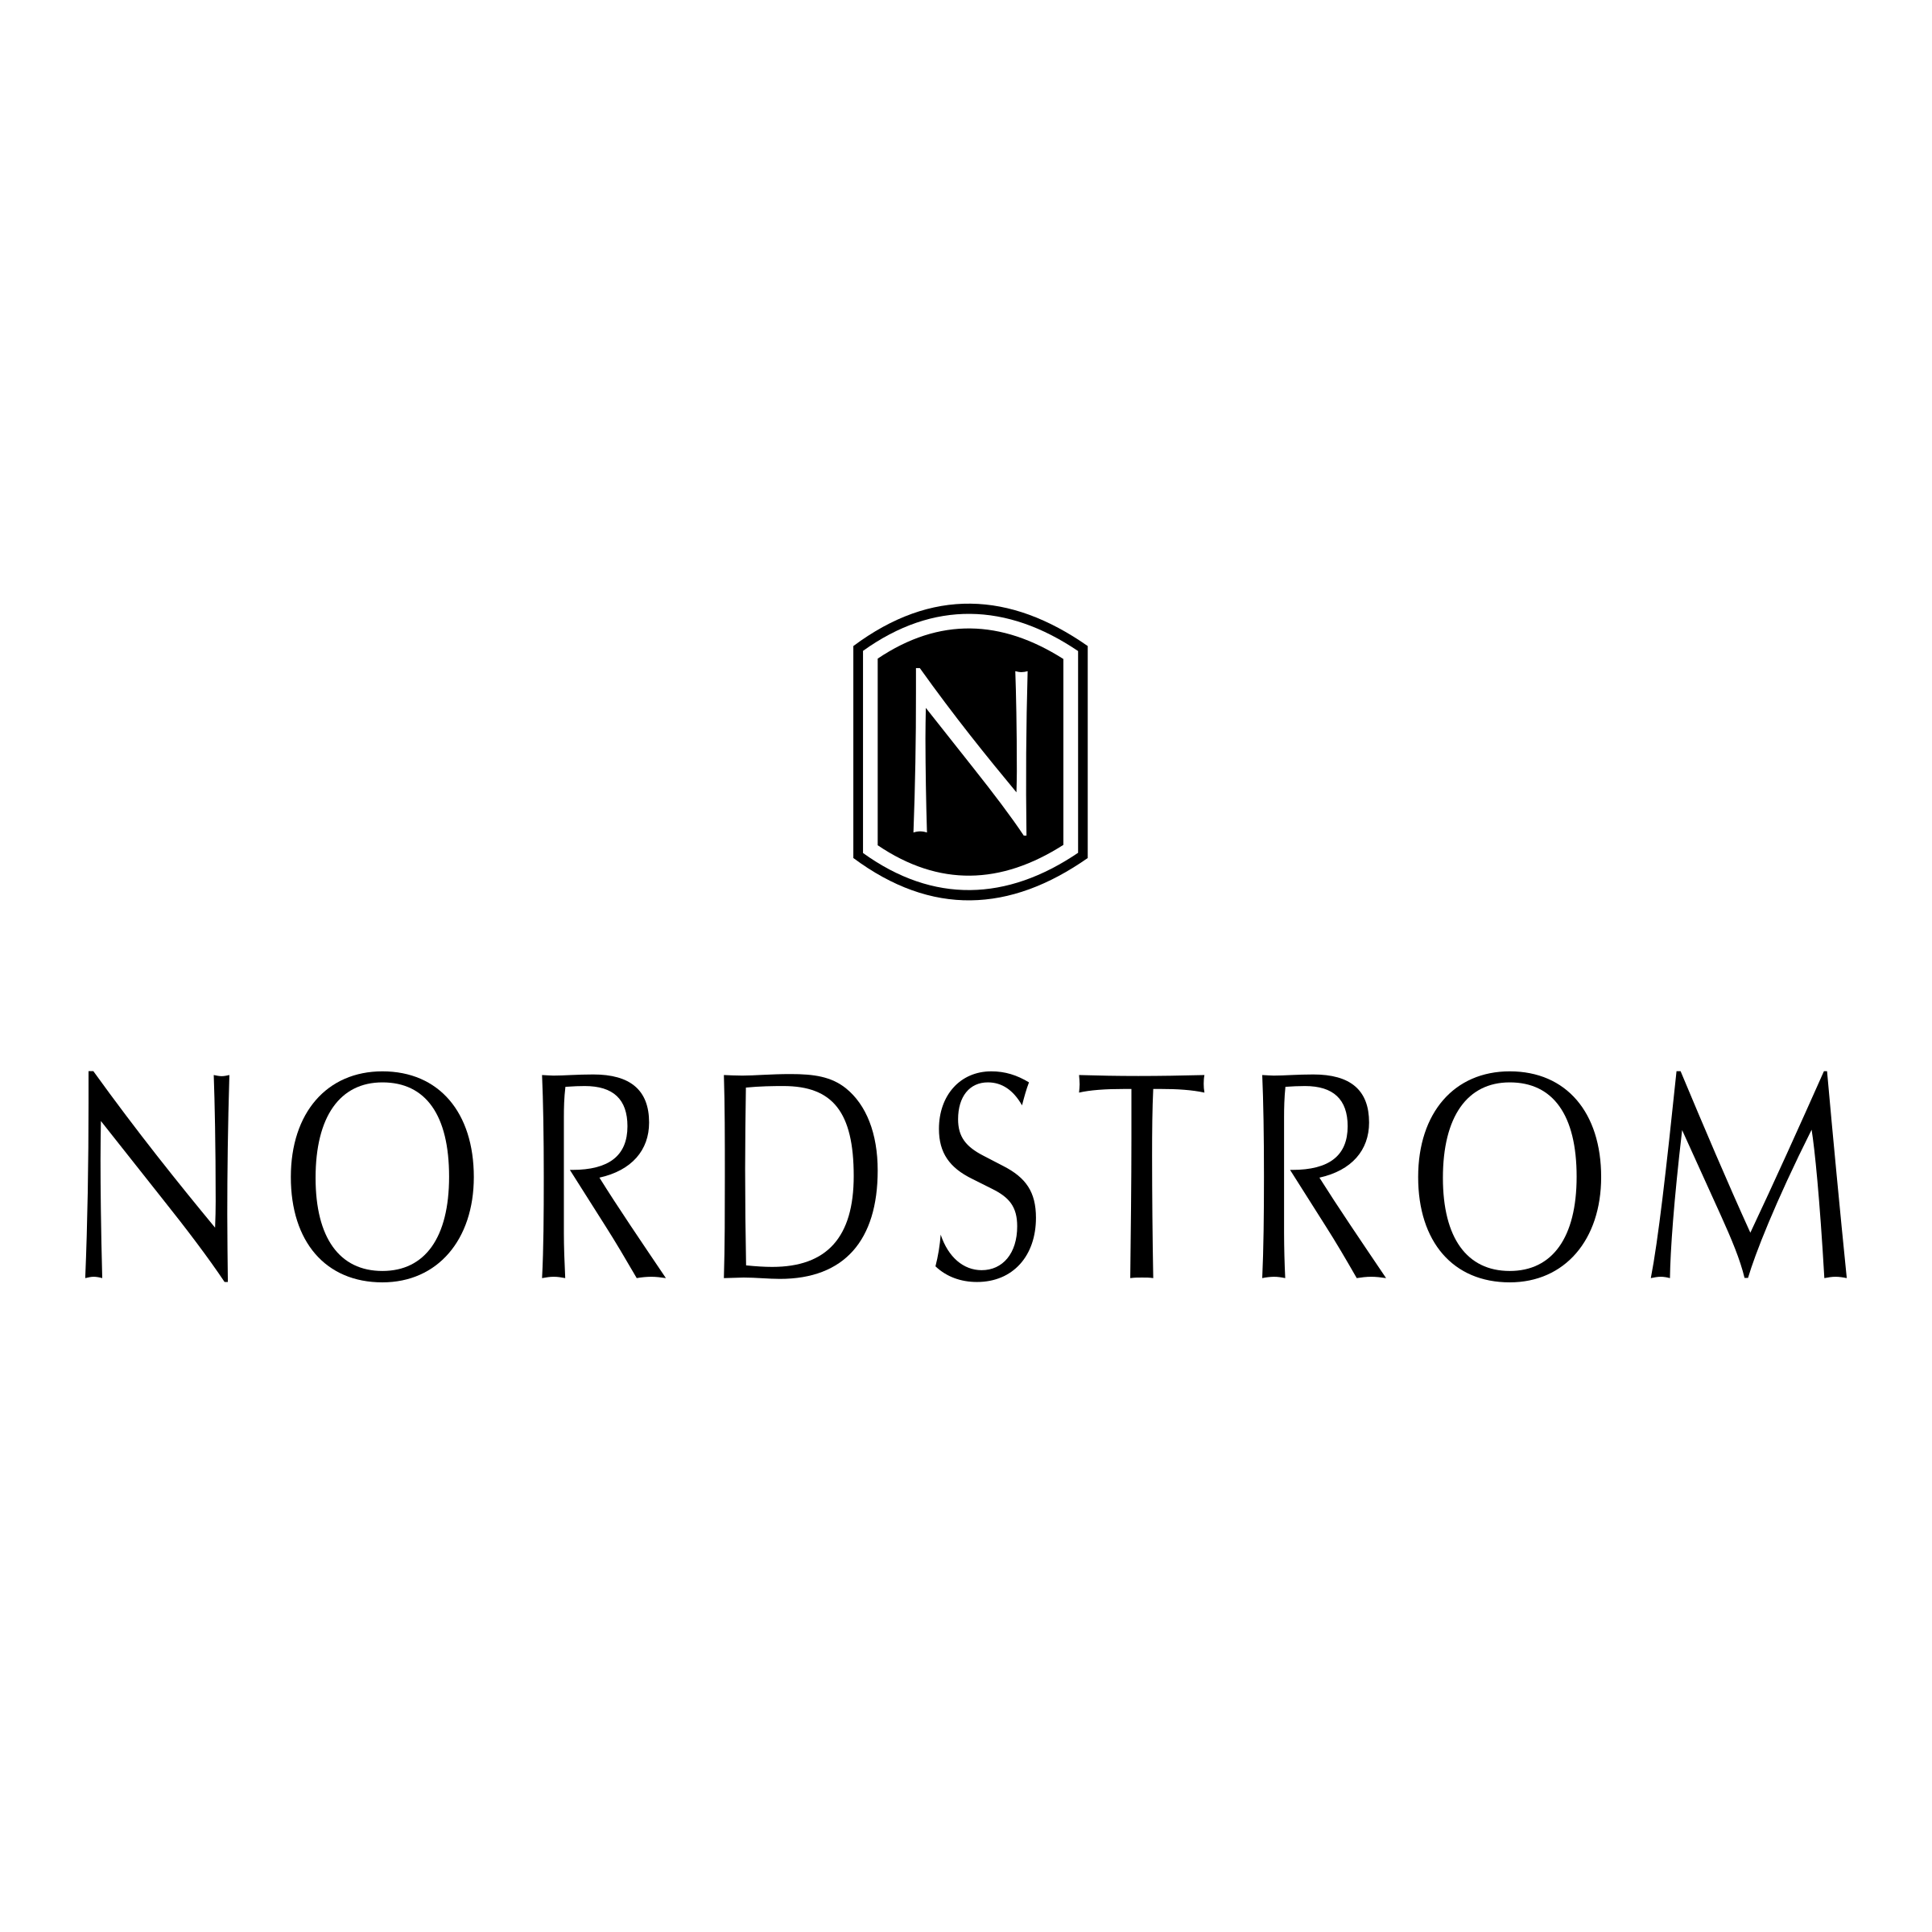 Nordstrom Logo PNG Transparent & SVG Vector.